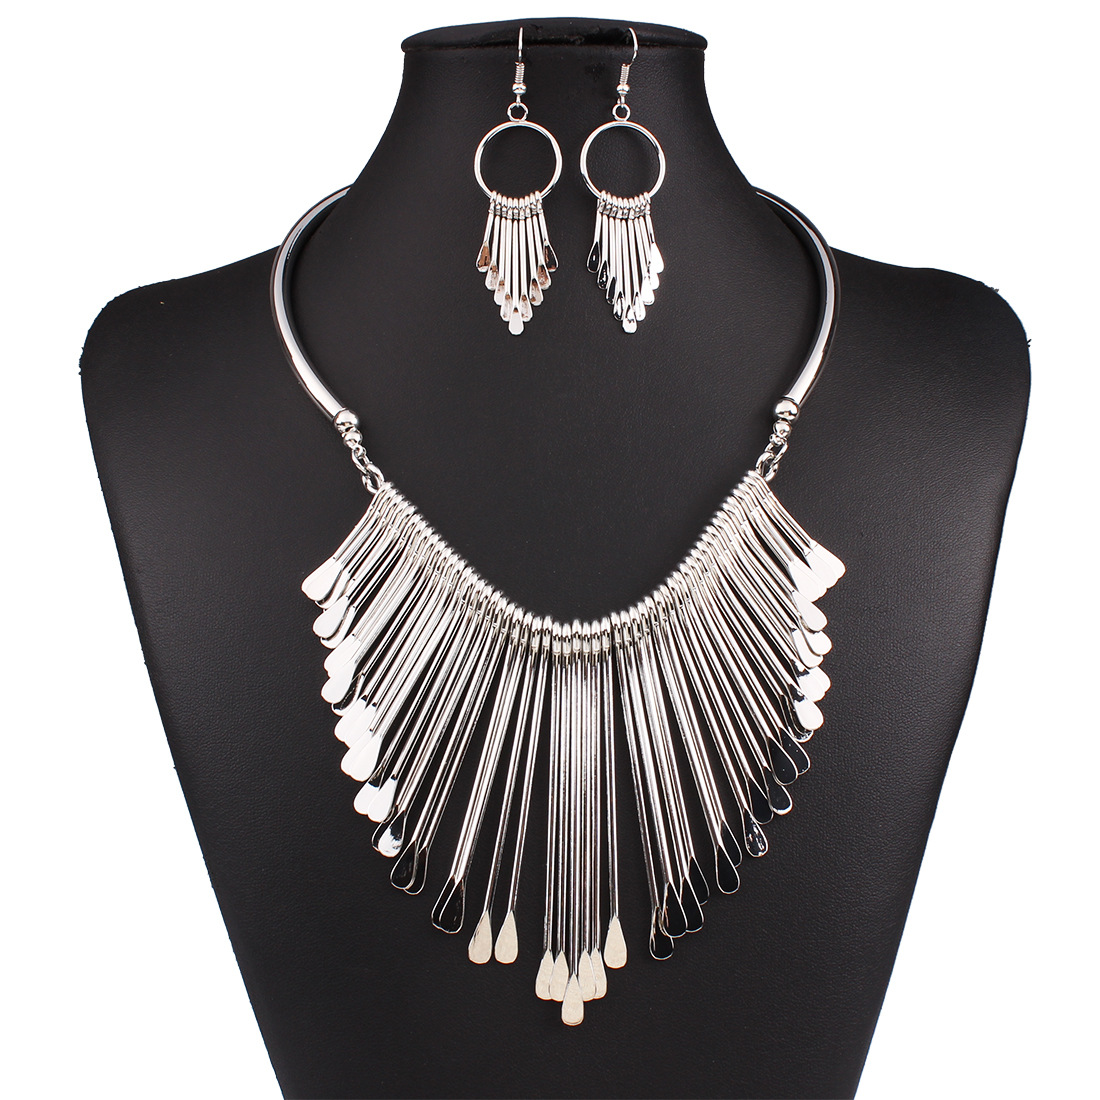 Occident wild temperament multilayer tassel necklace sets ( Silver ) NHNMD1069